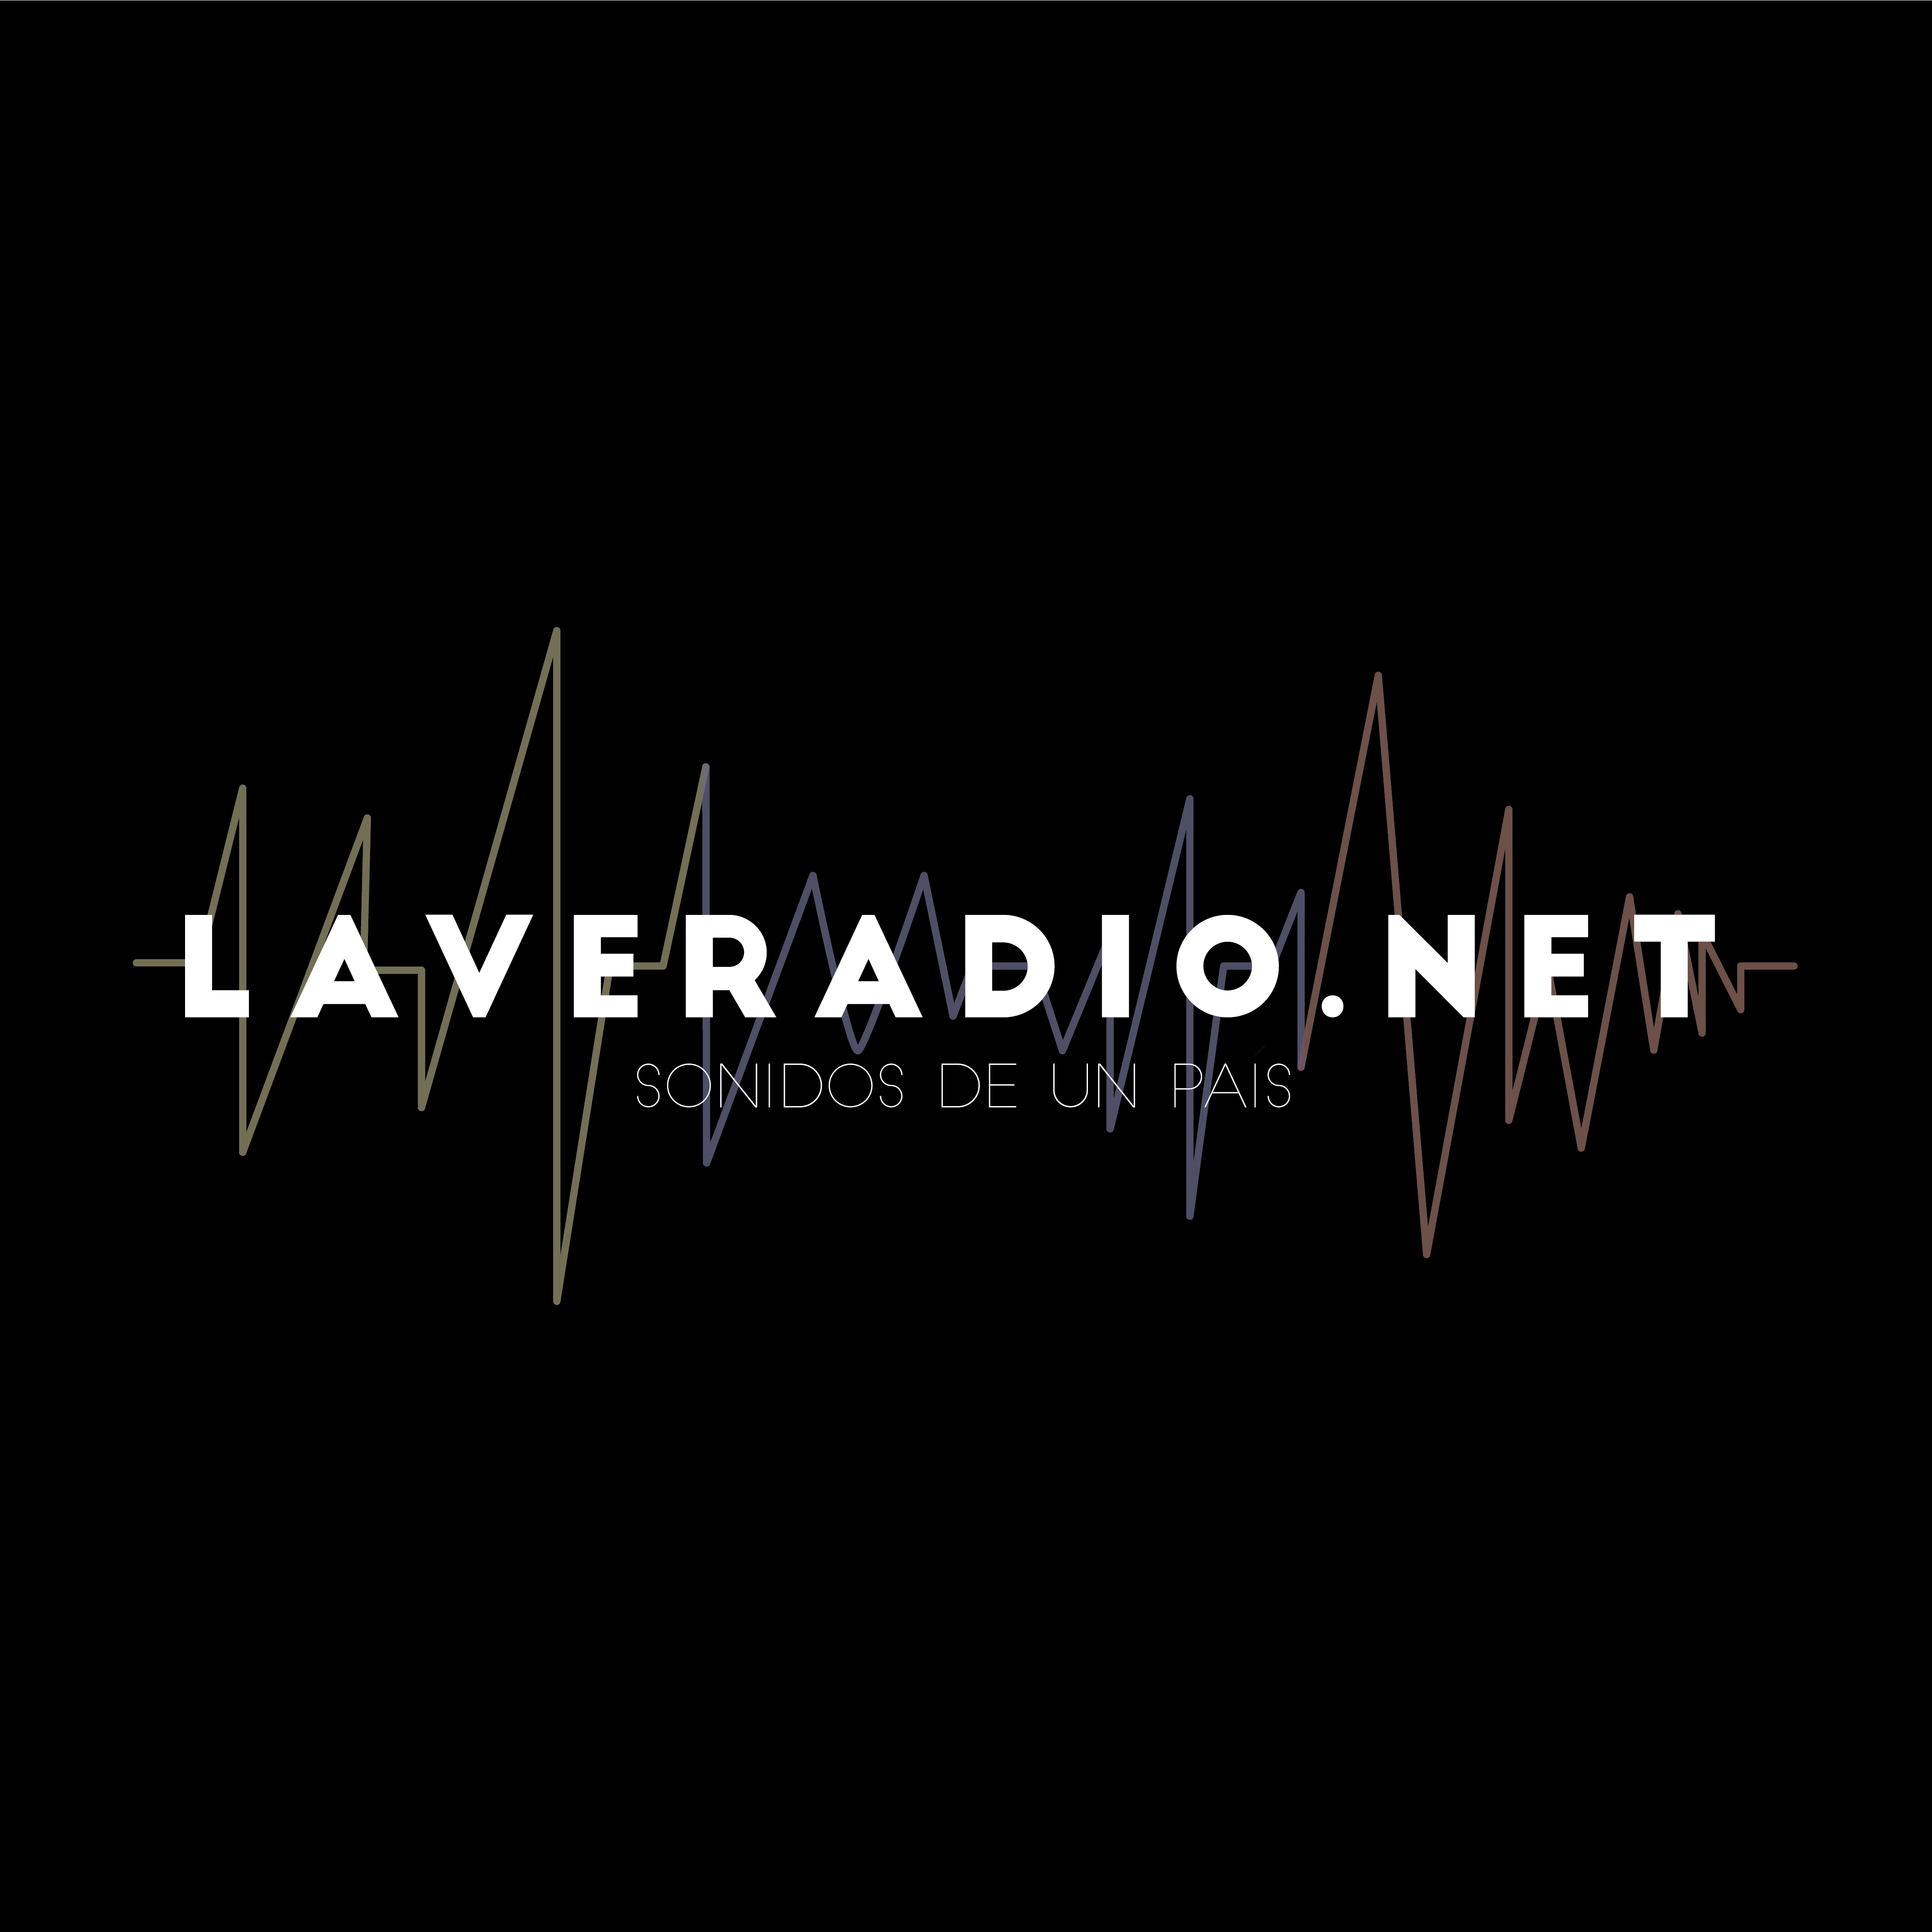 Laveradio.net